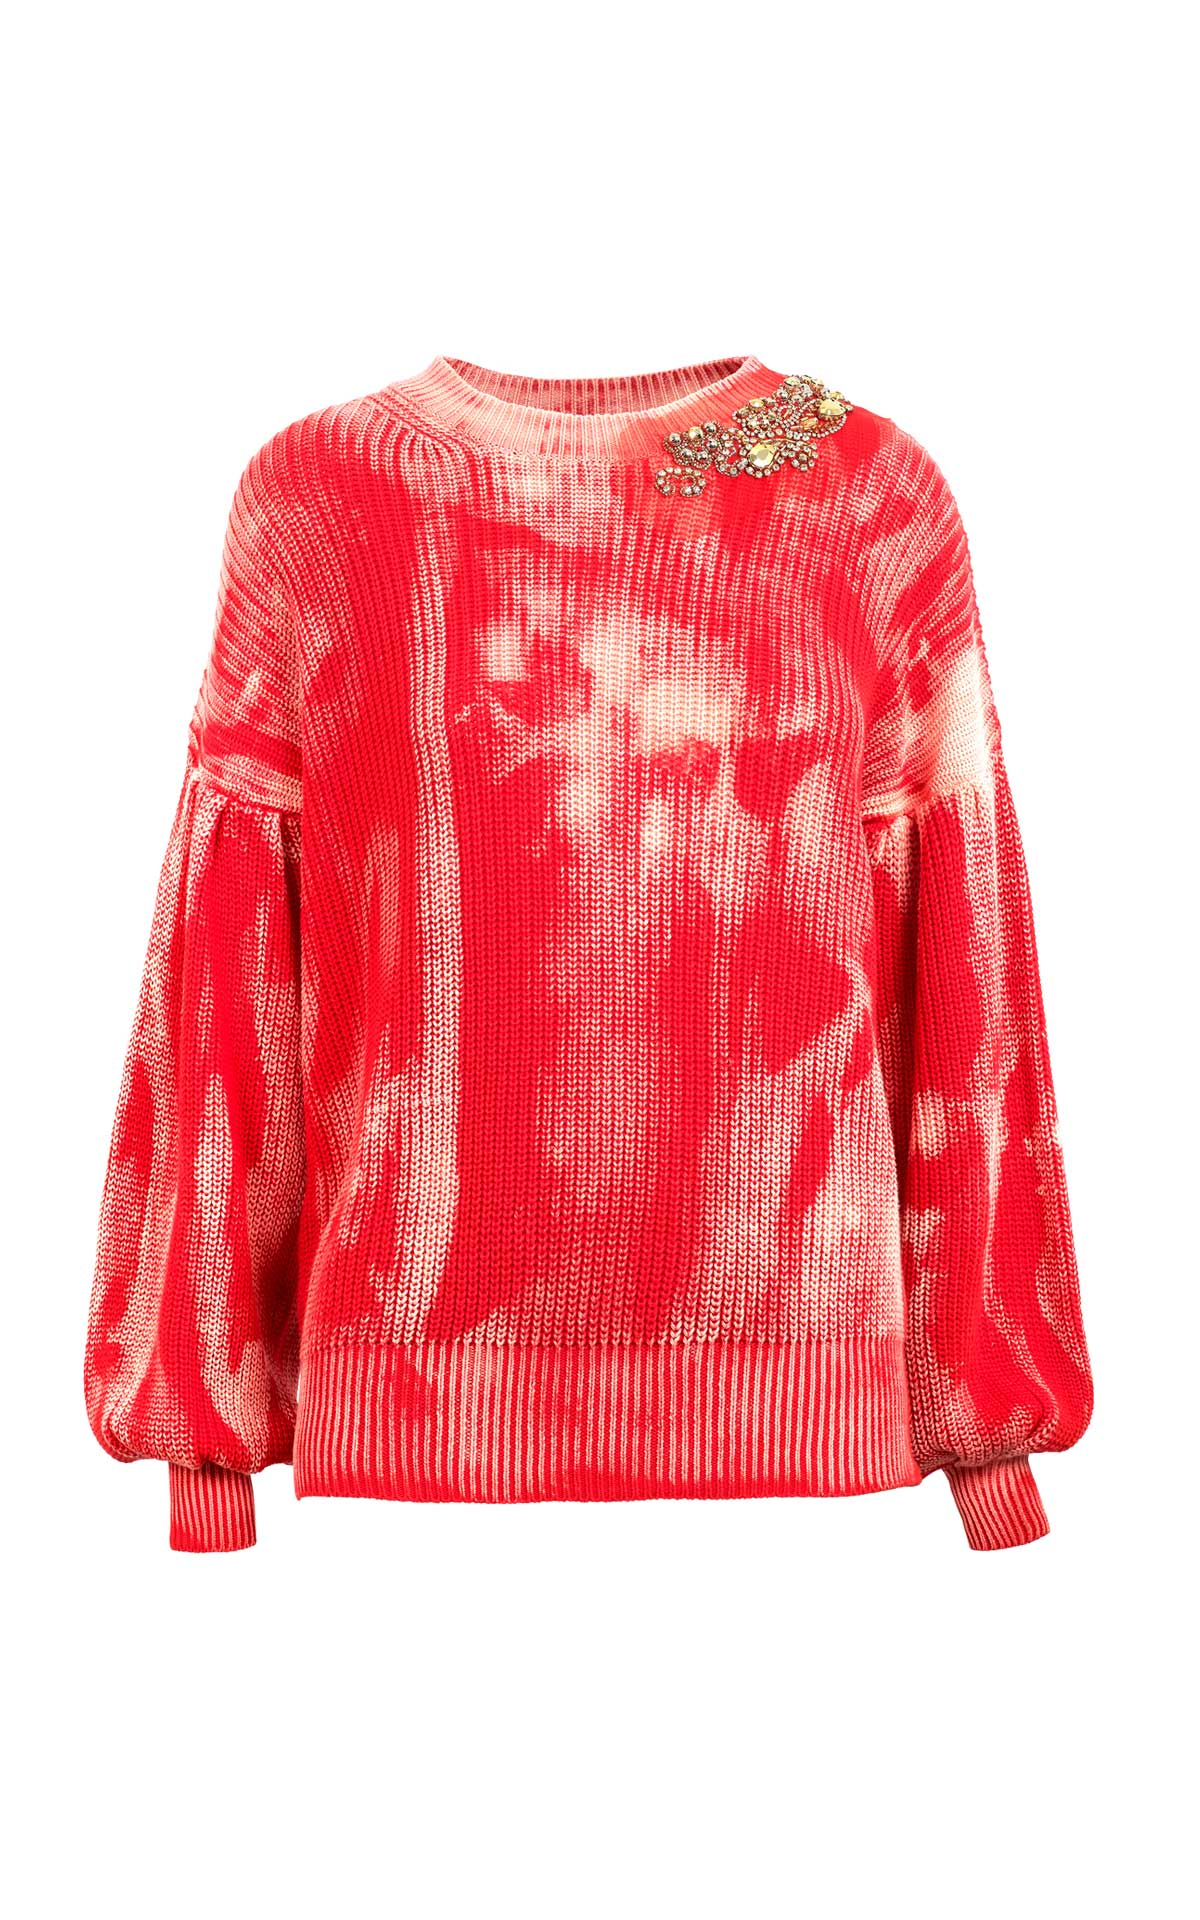 Orange tie-dye sweater Pinko